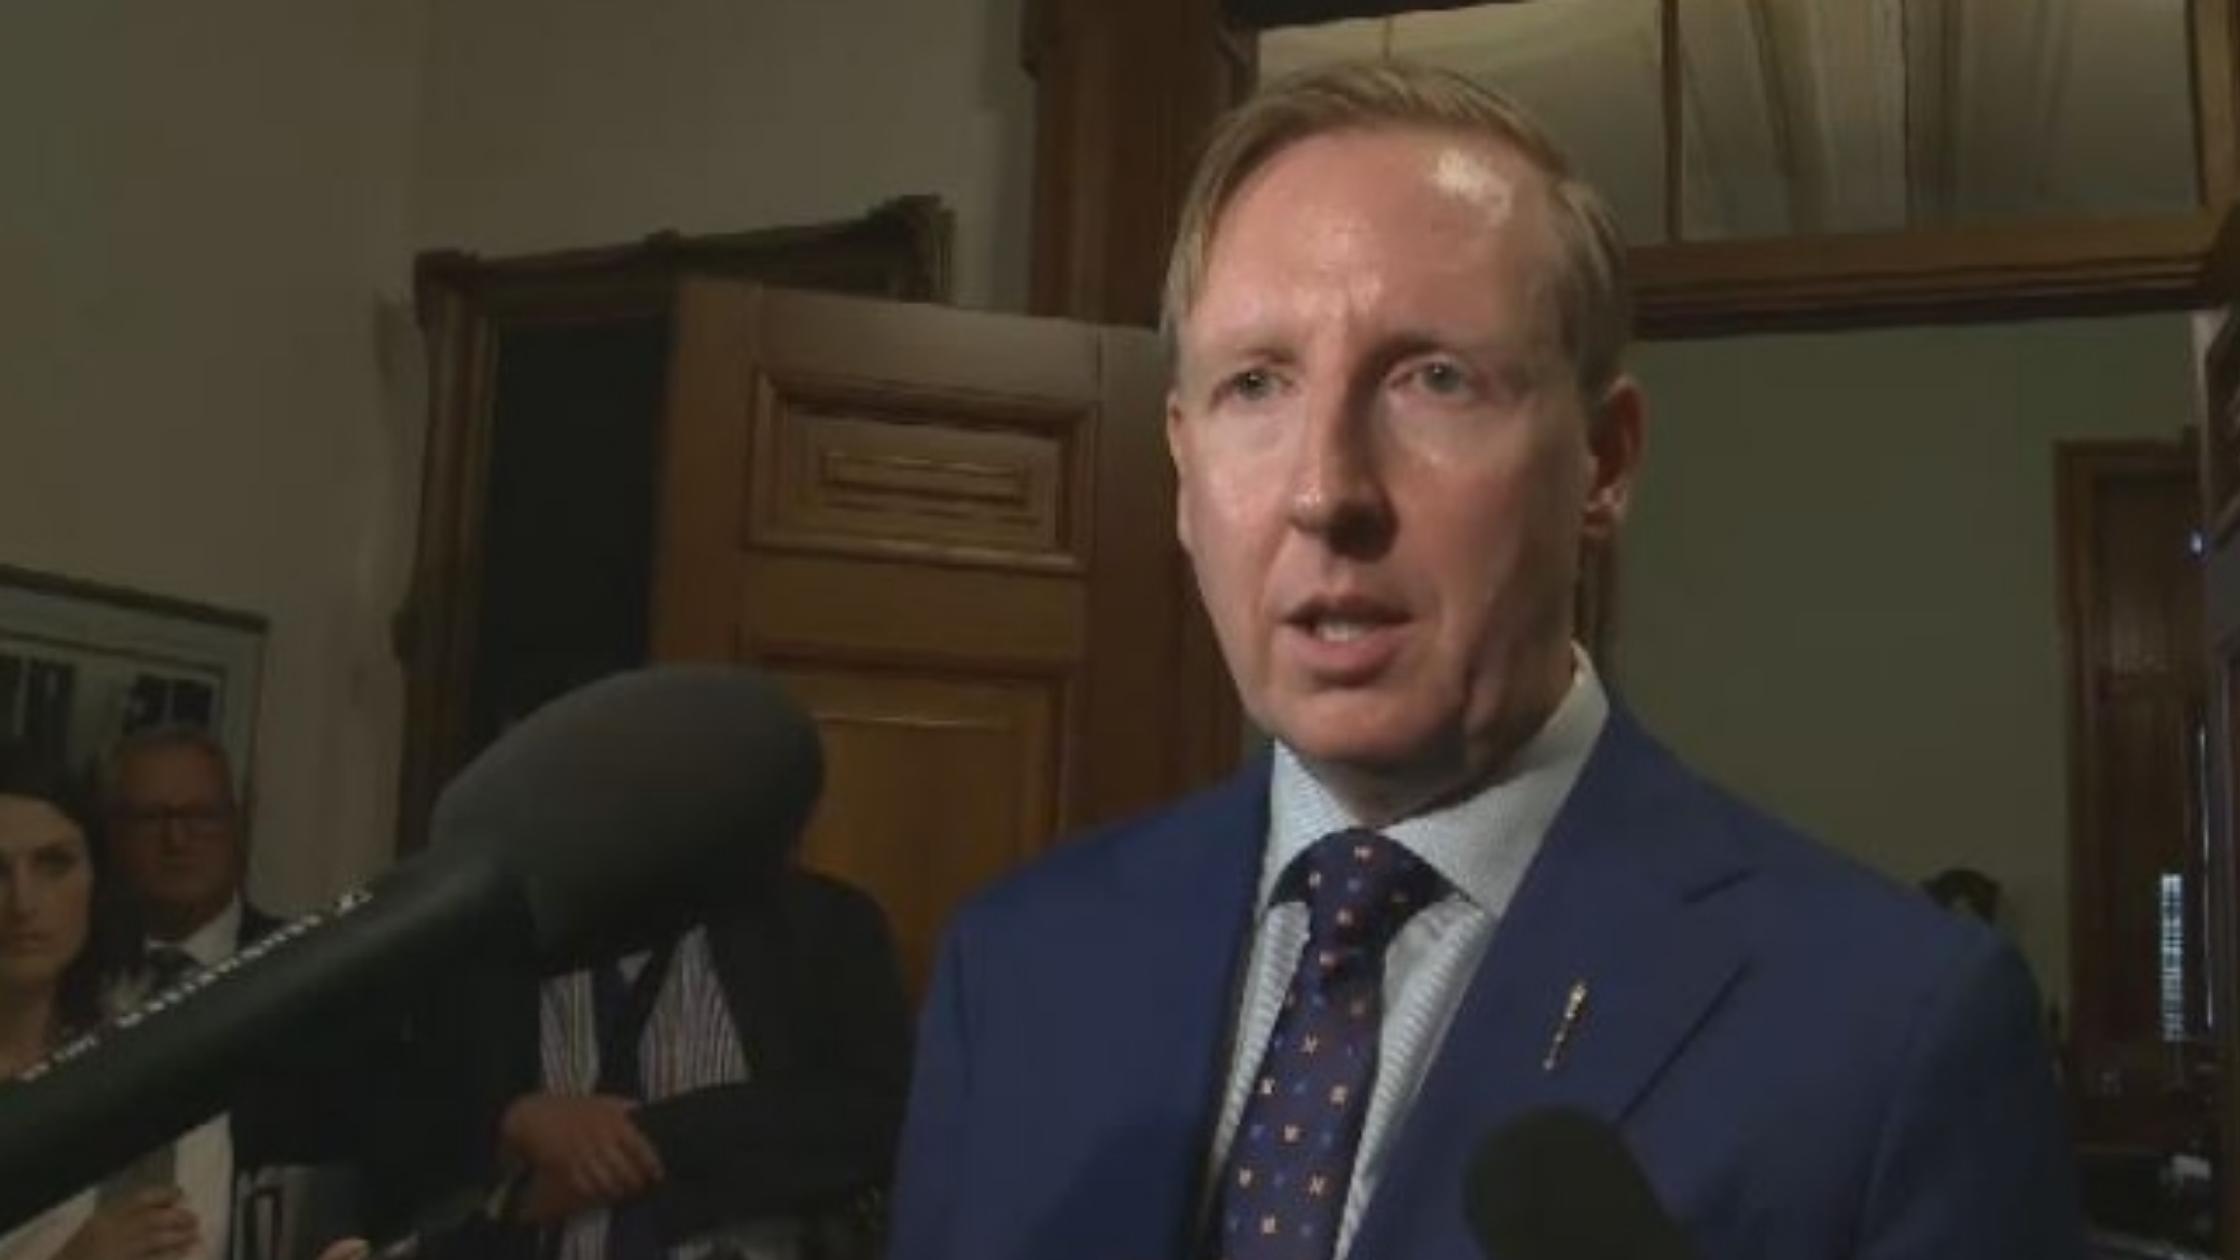 Education minister seeks new discipline policy on bullying